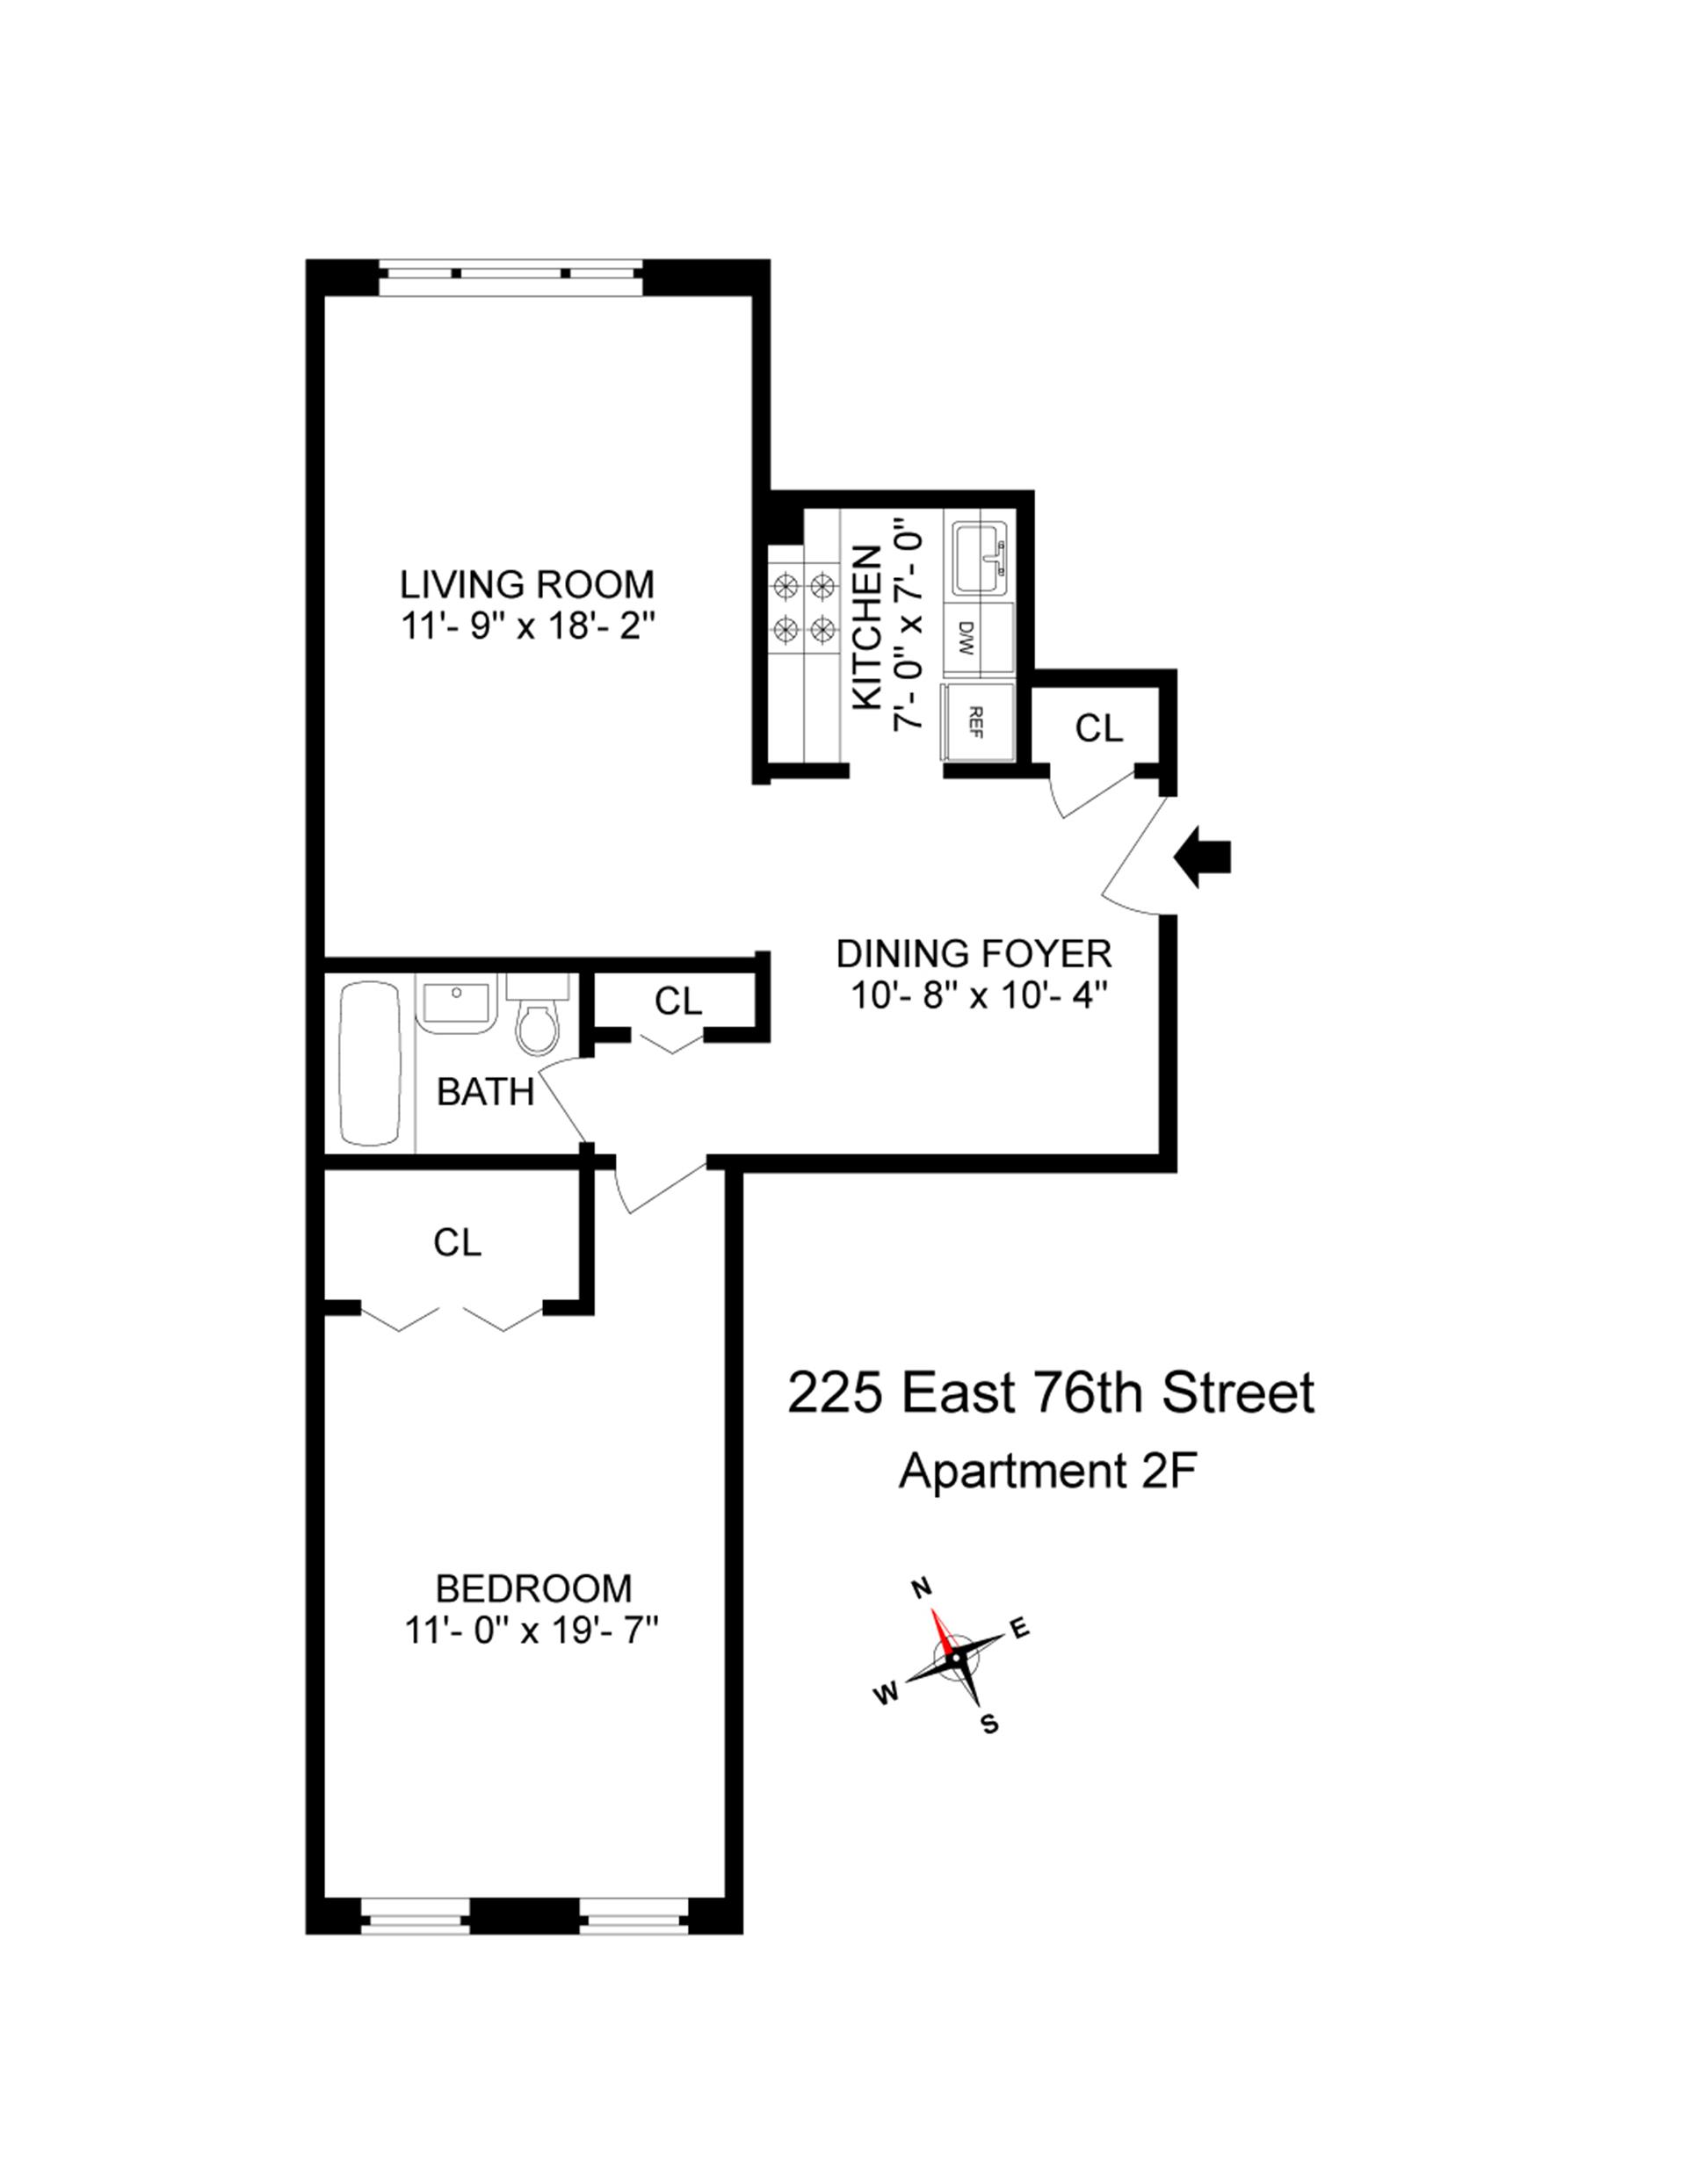 Floor plan of 225 E 76TH OWNERS C, 225 East 76th St, 2F - Upper East Side, New York